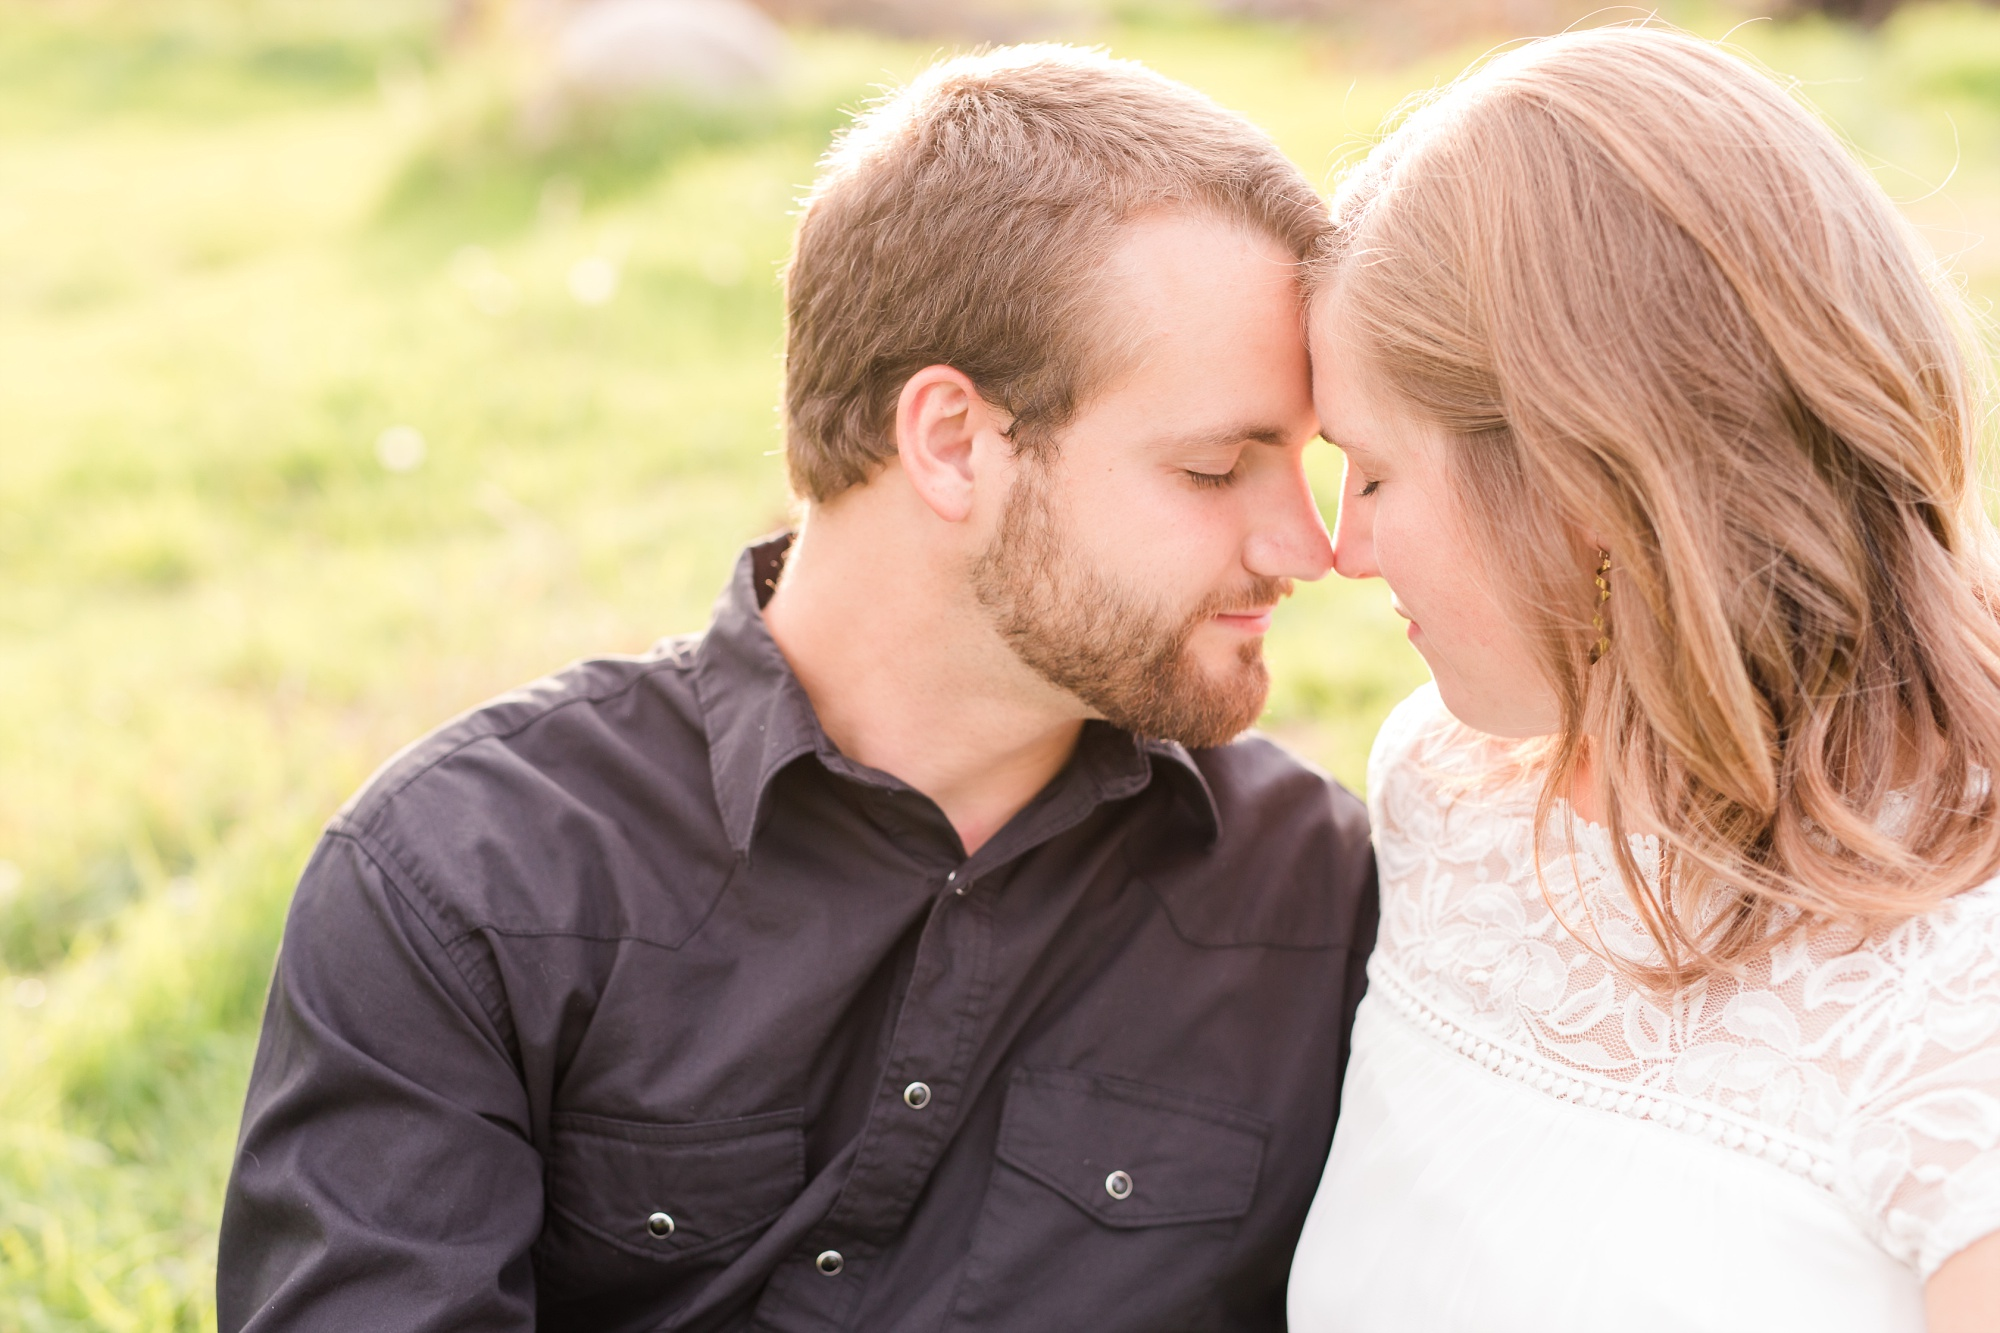 AmberLangerudPhotography_Countryside Engagement Session in Minnesota_3100.jpg